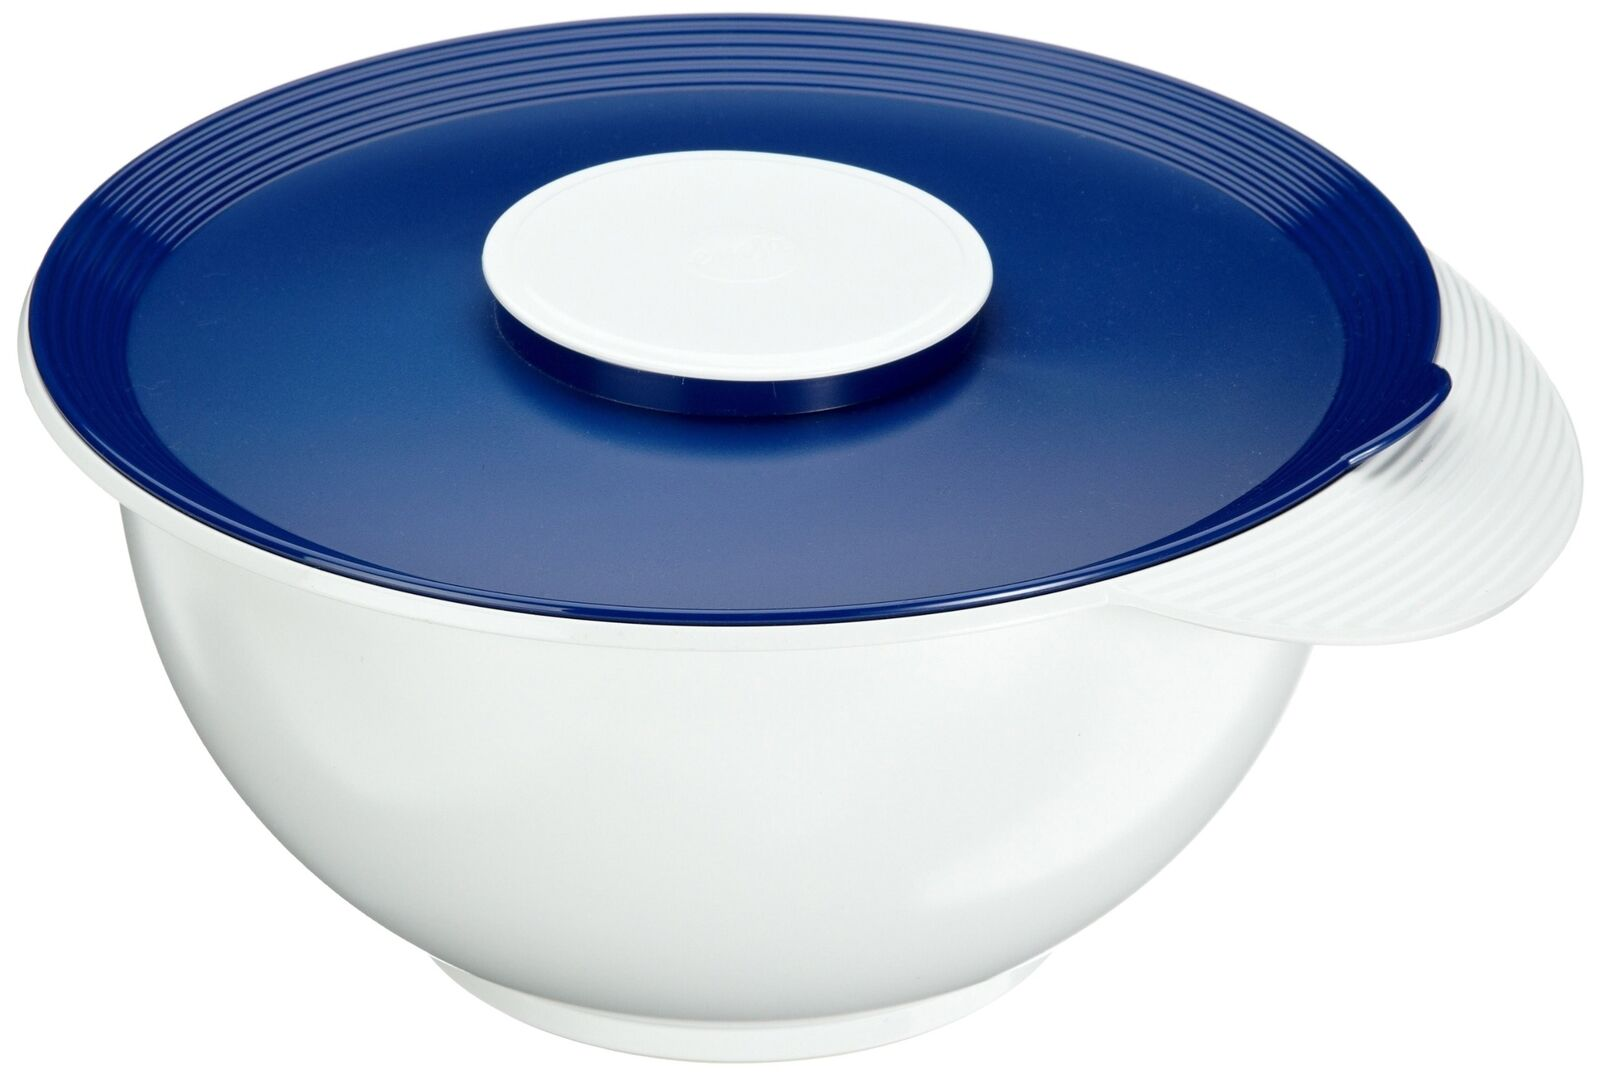 Emsa 2154451200 Superline mixing bowl with lid, 4.5 litres, white bluee